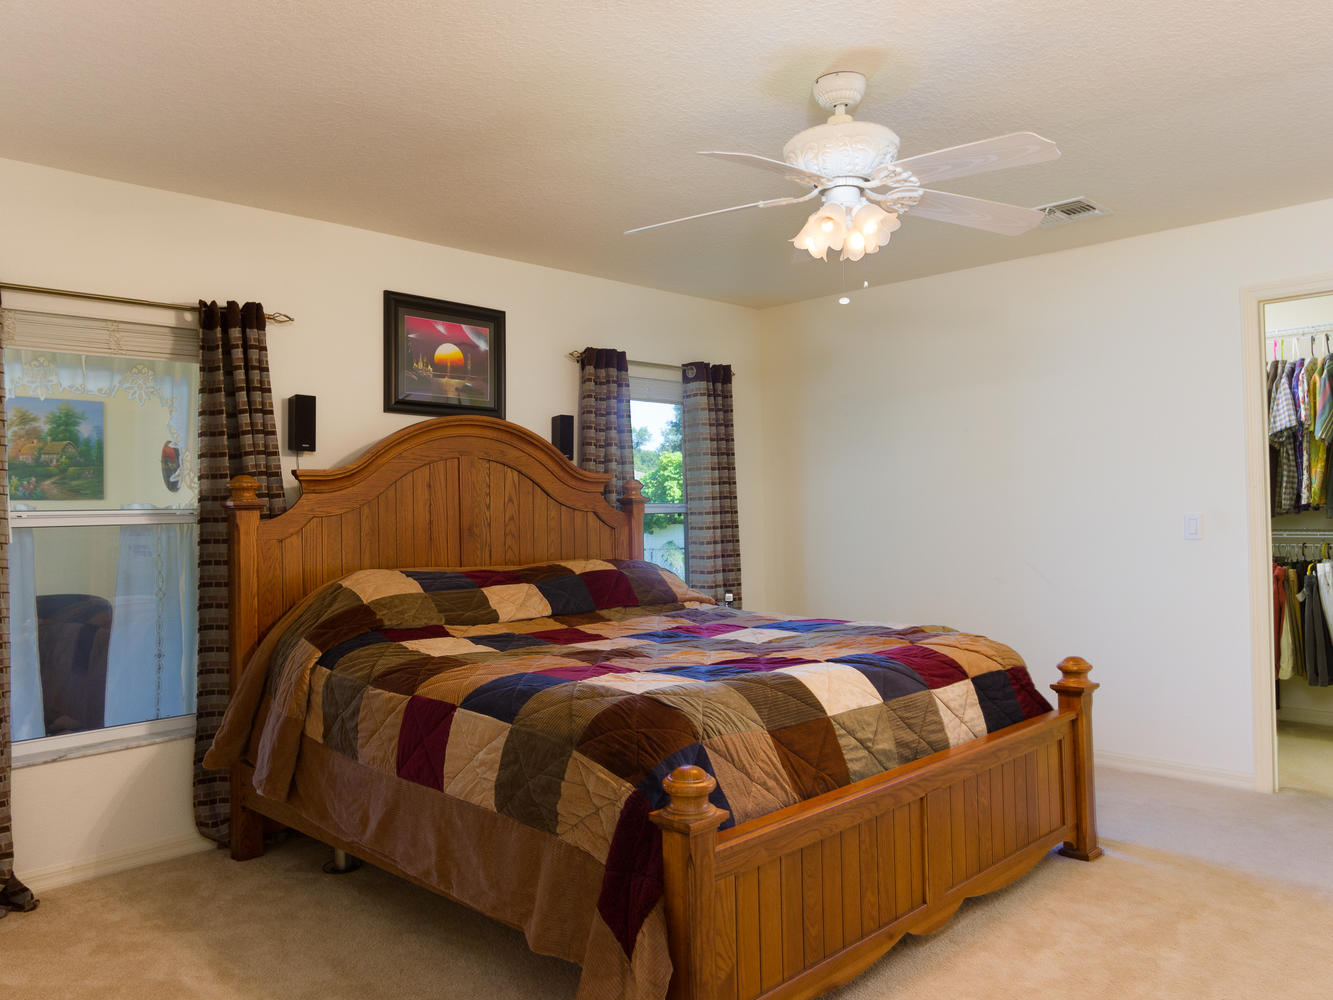 15660_SE_89th_Ct_Summerfield-large-010-27-Master_Bedroom-1334x1000-72dpi